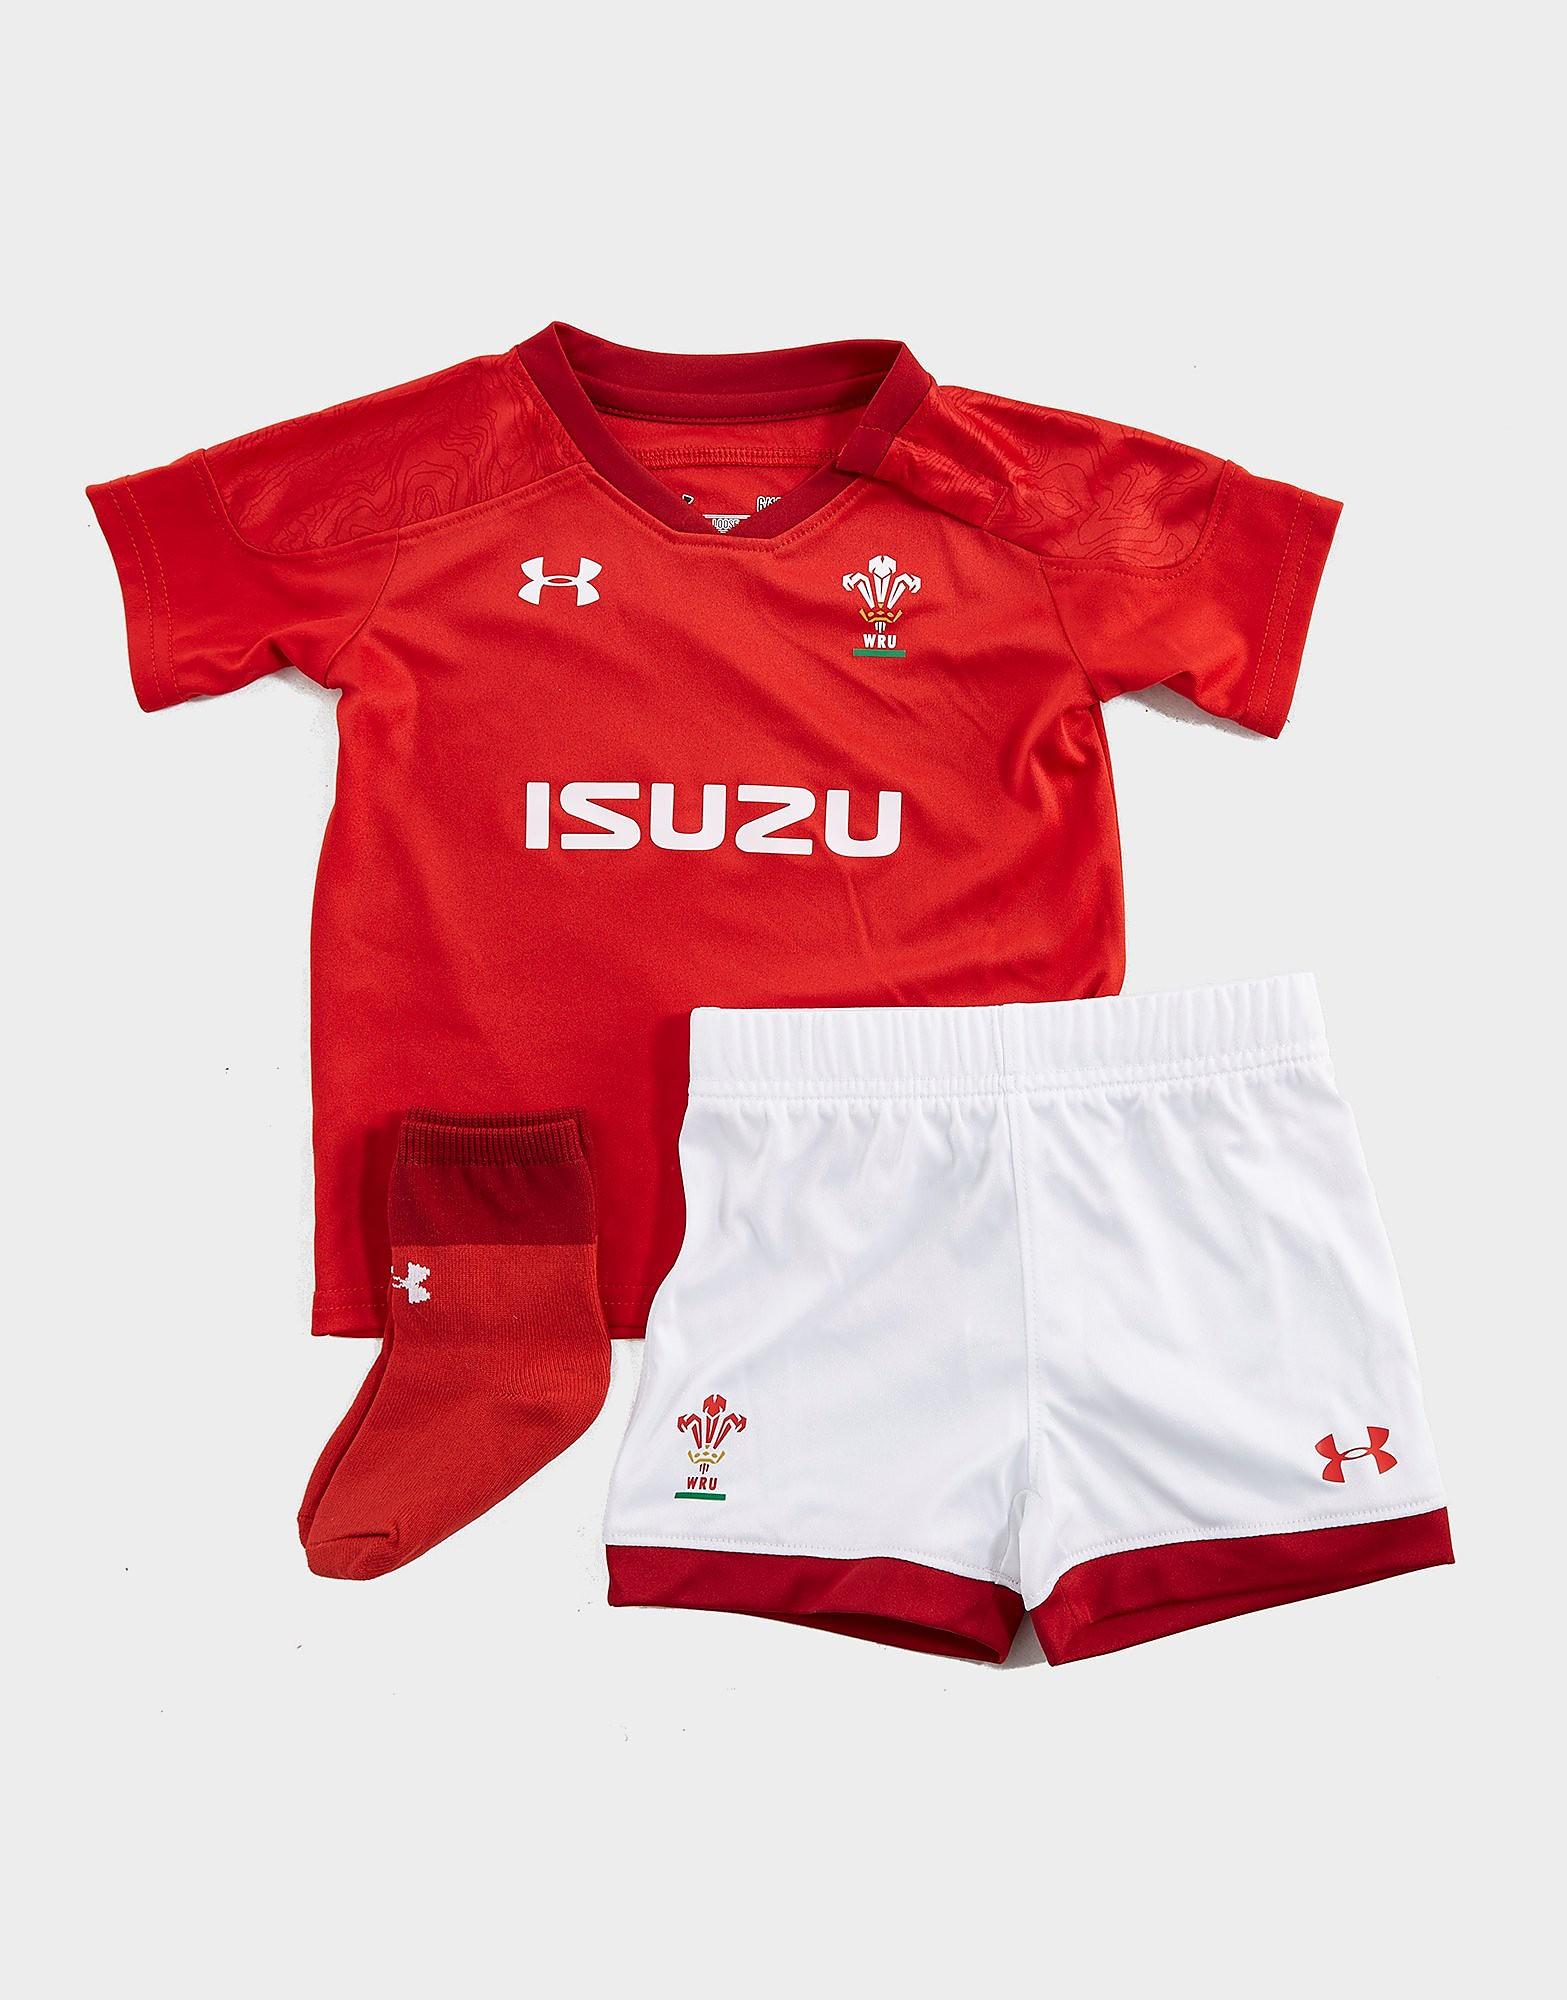 Under Armour Wales RU 2017/18 Kit Infant